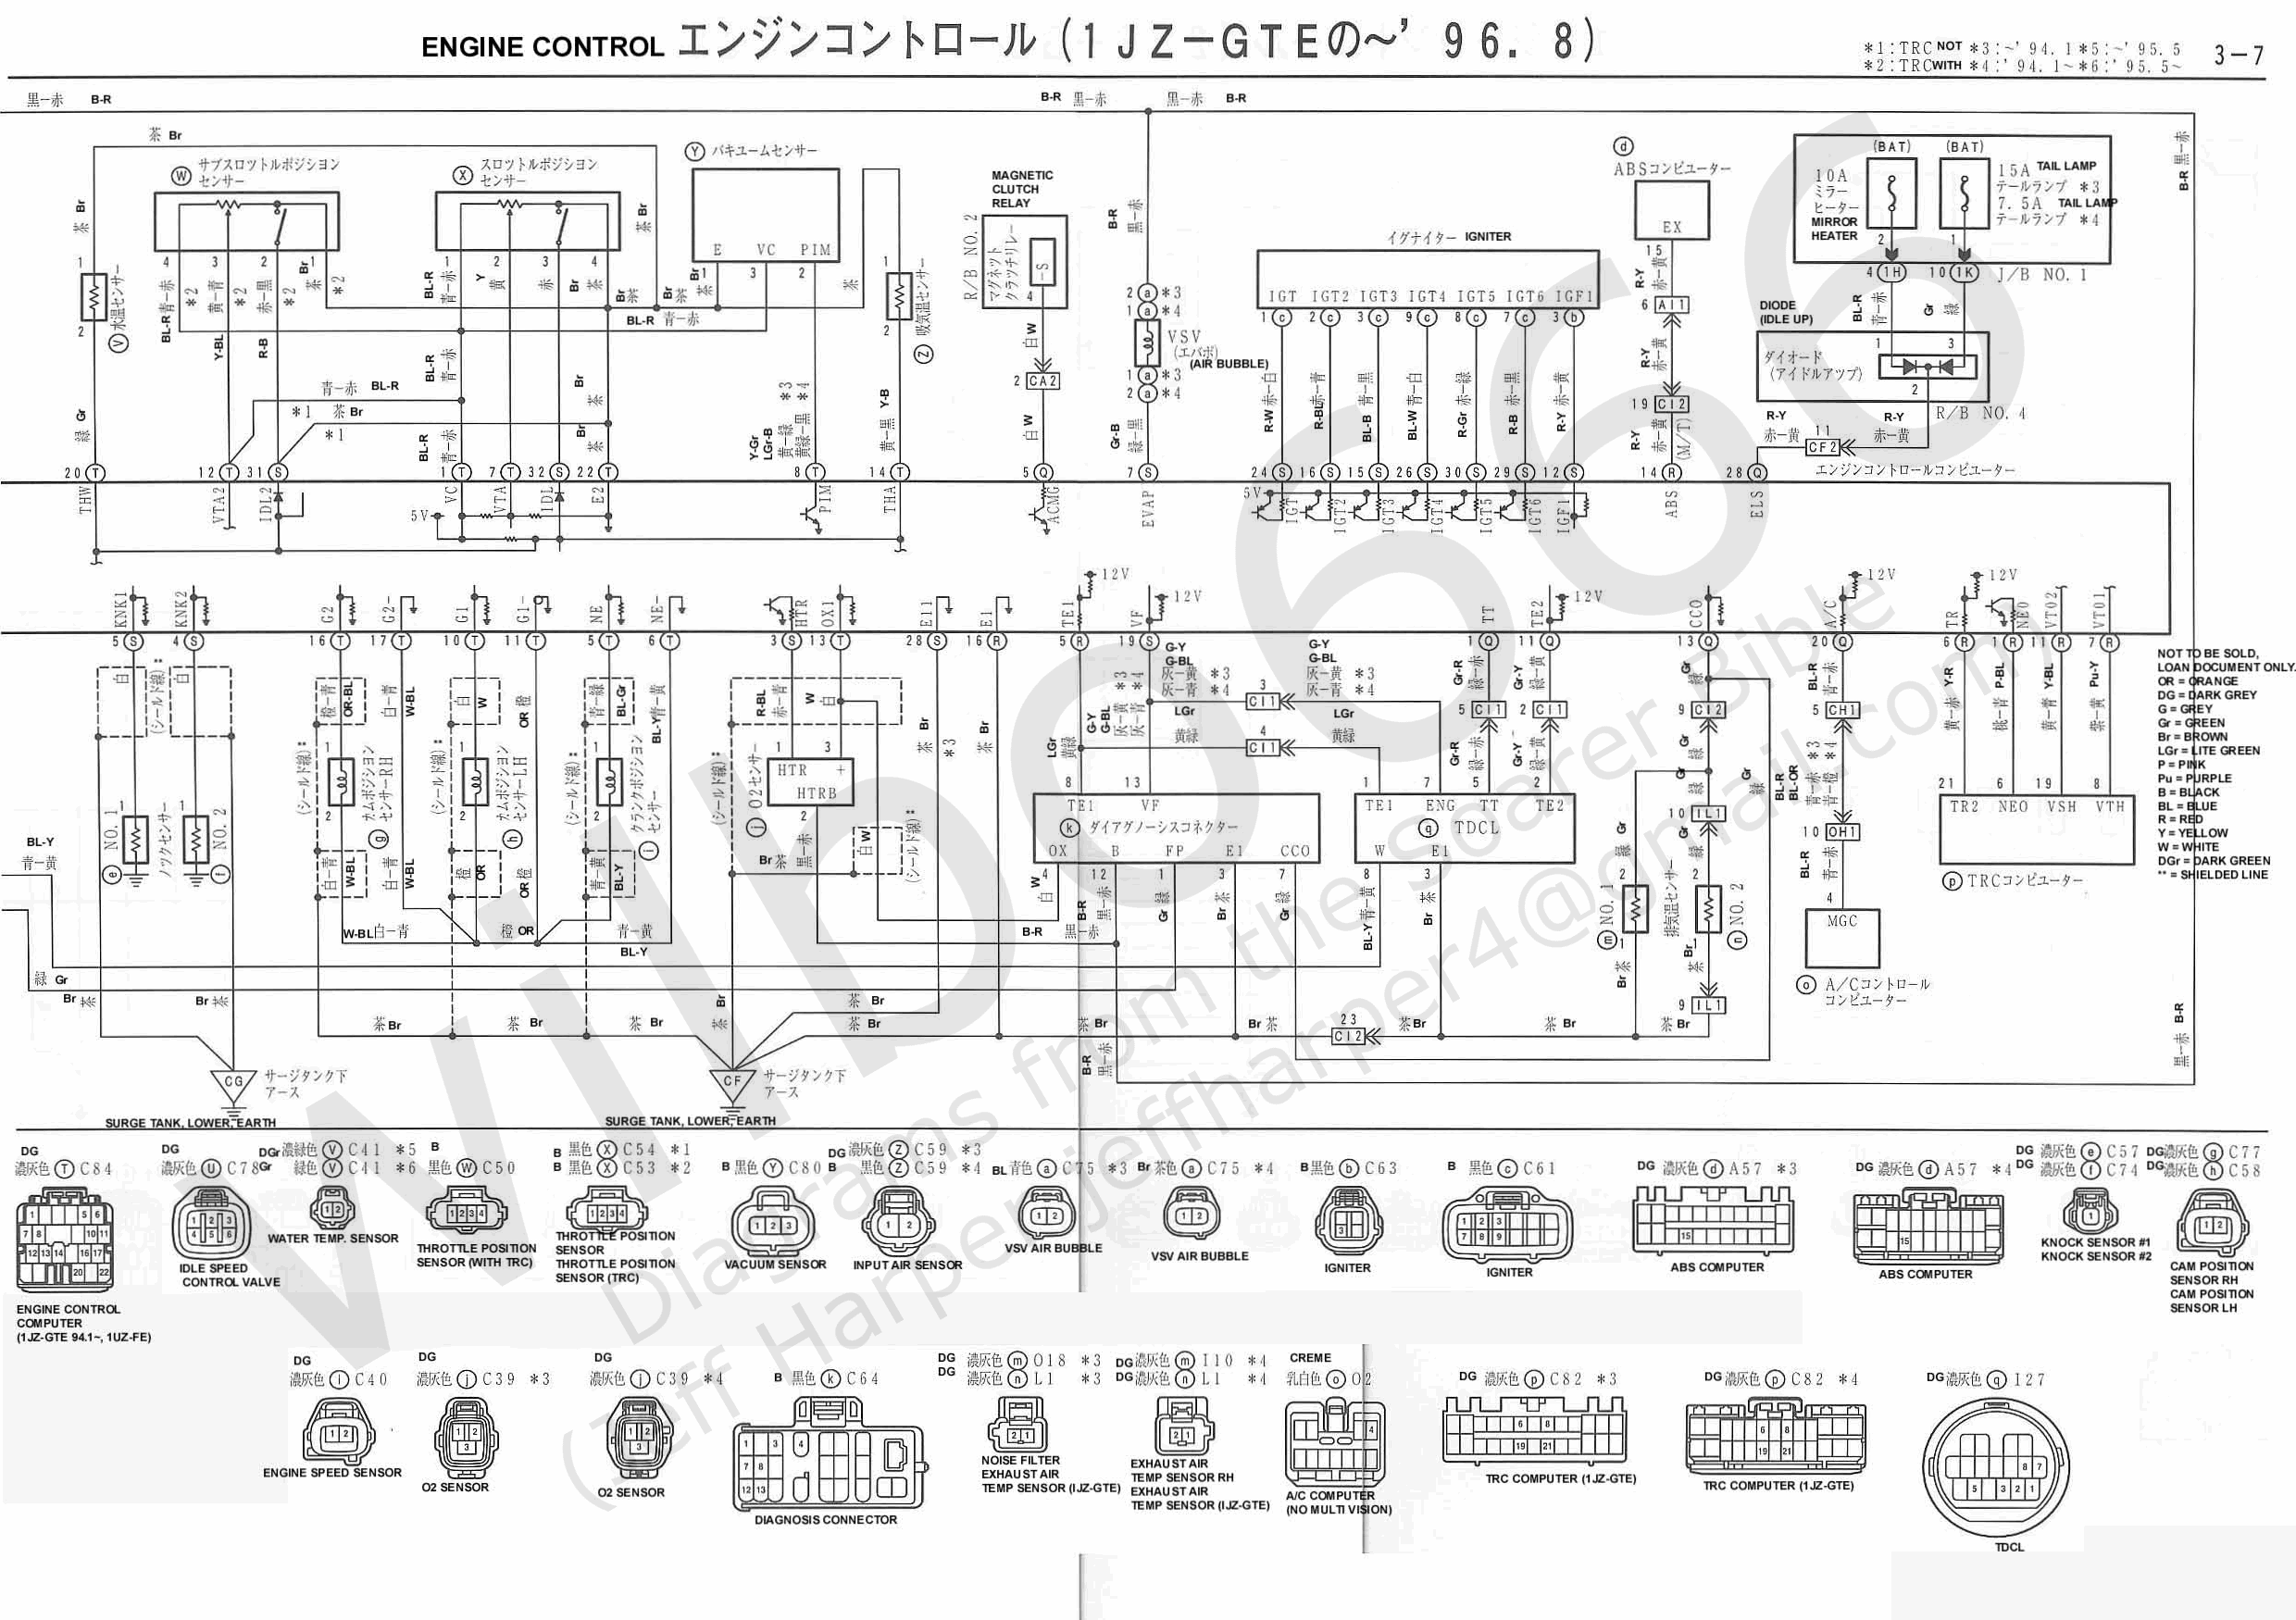 xZZ3x Electrical Wiring Diagram 6737105 3 7 wilbo666 [licensed for non commercial use only] mirror 1jz gte 1jz vvti wiring diagram at couponss.co